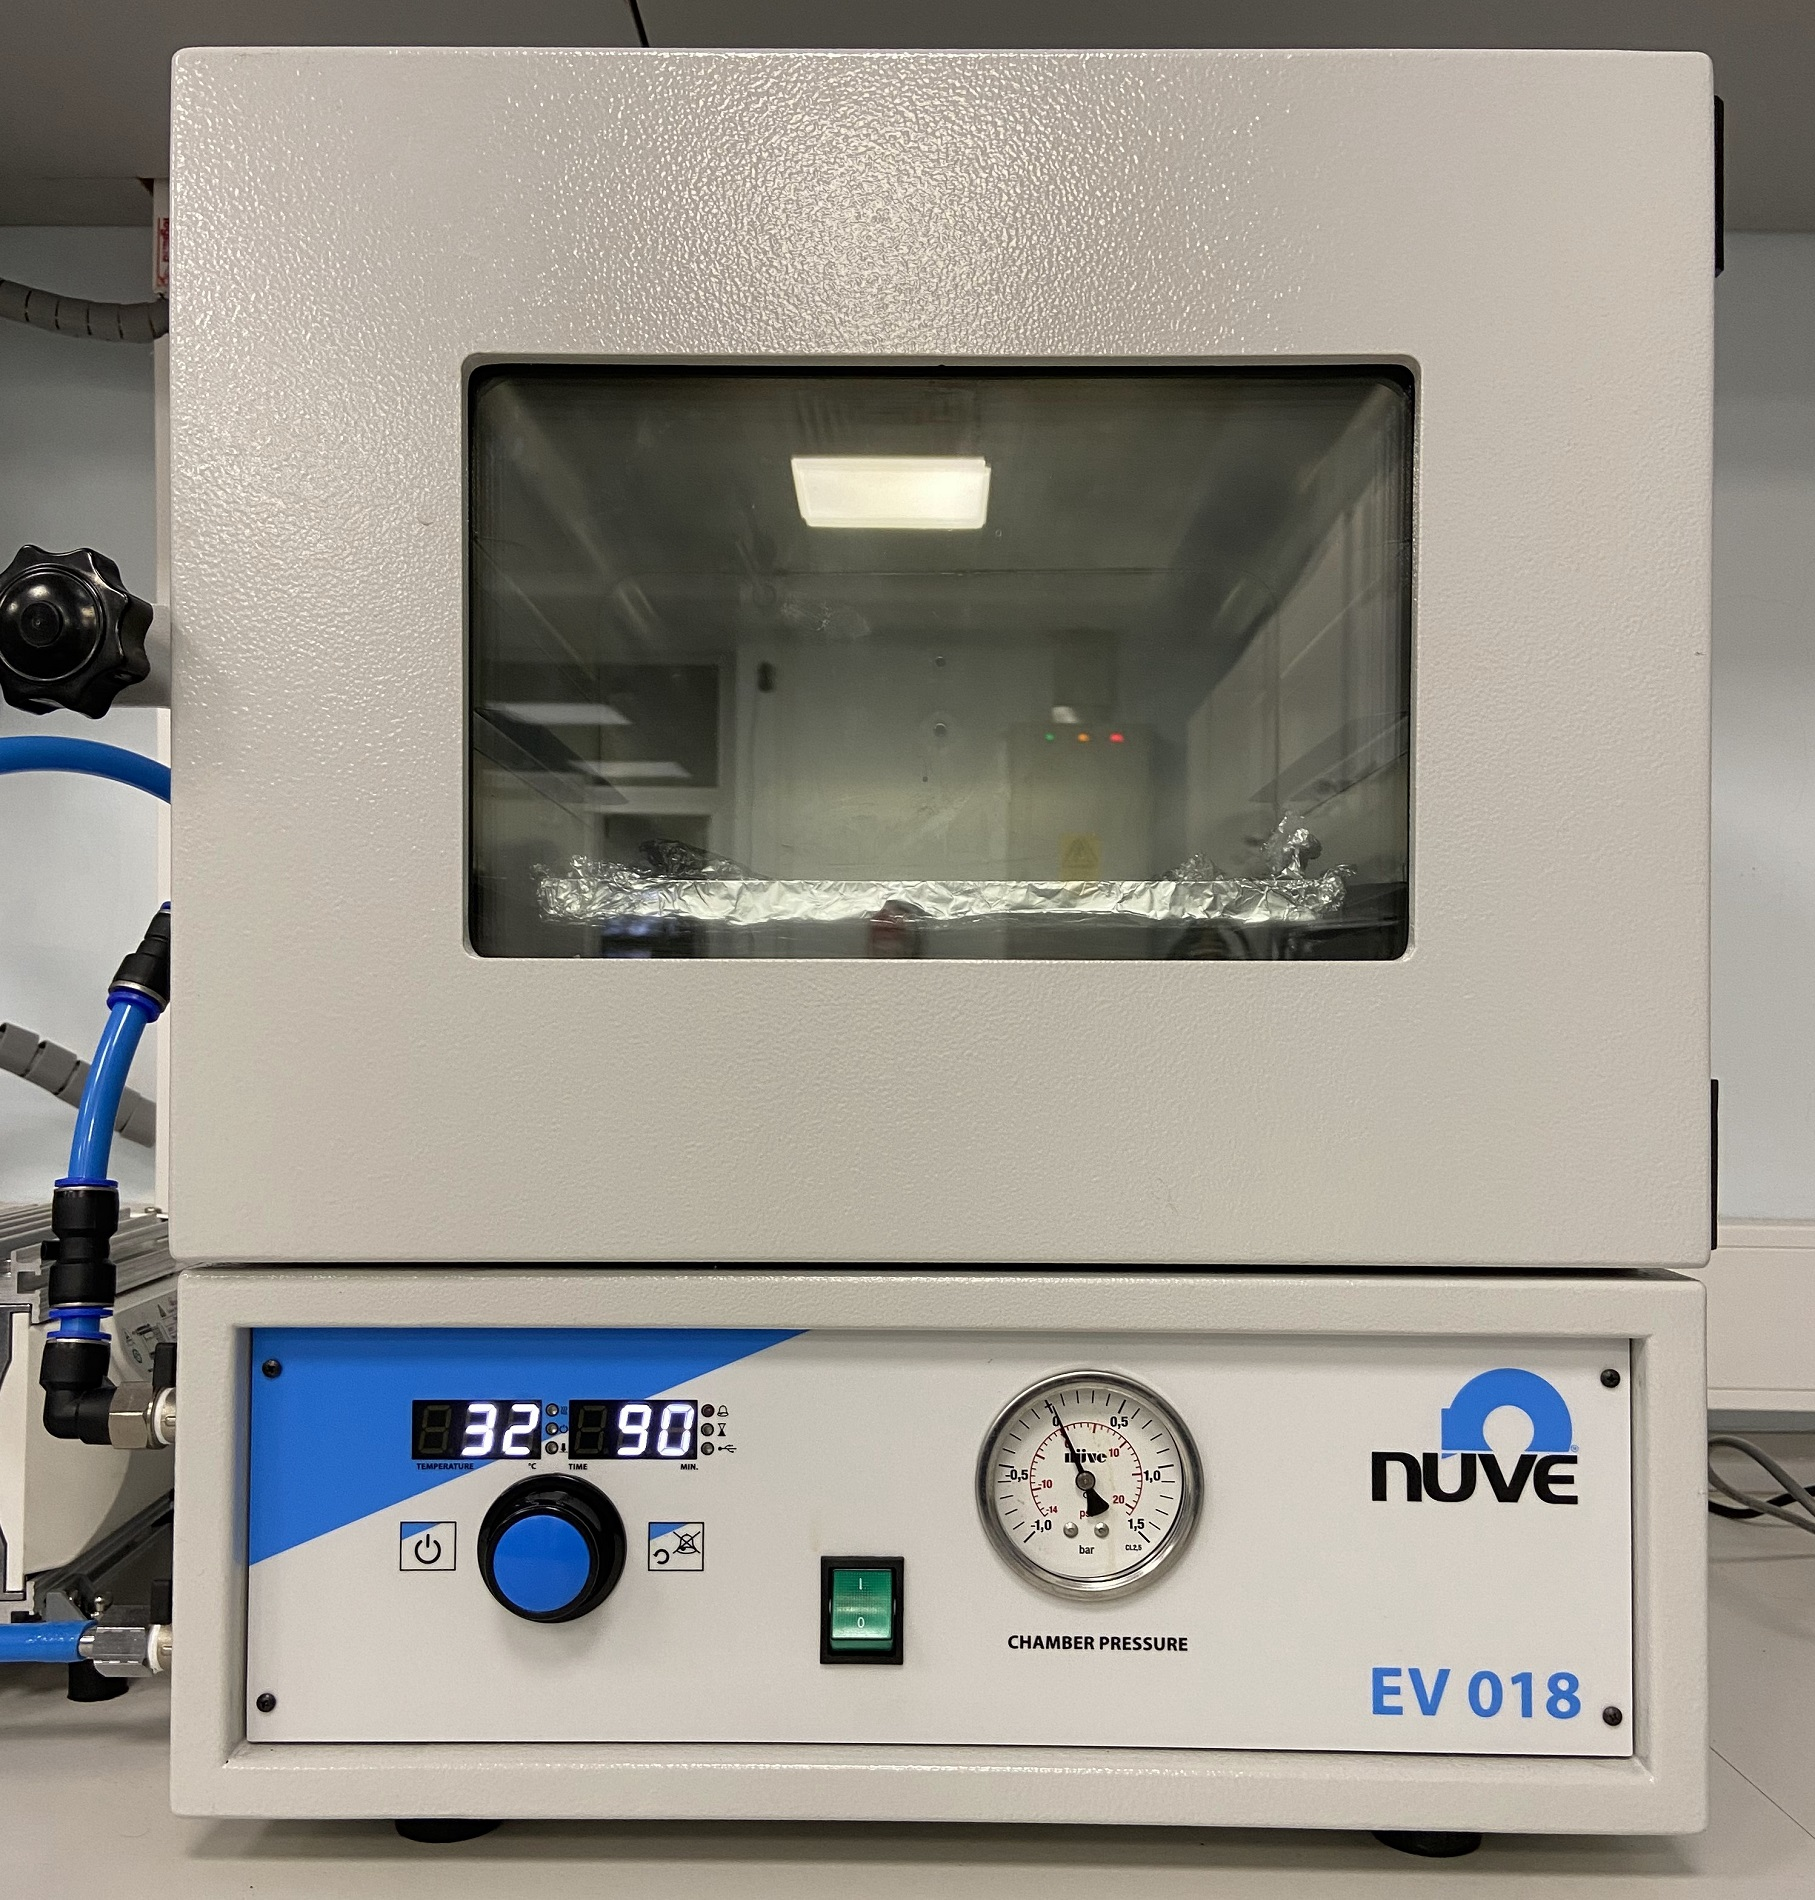 Nuve EV 018 Drying Oven